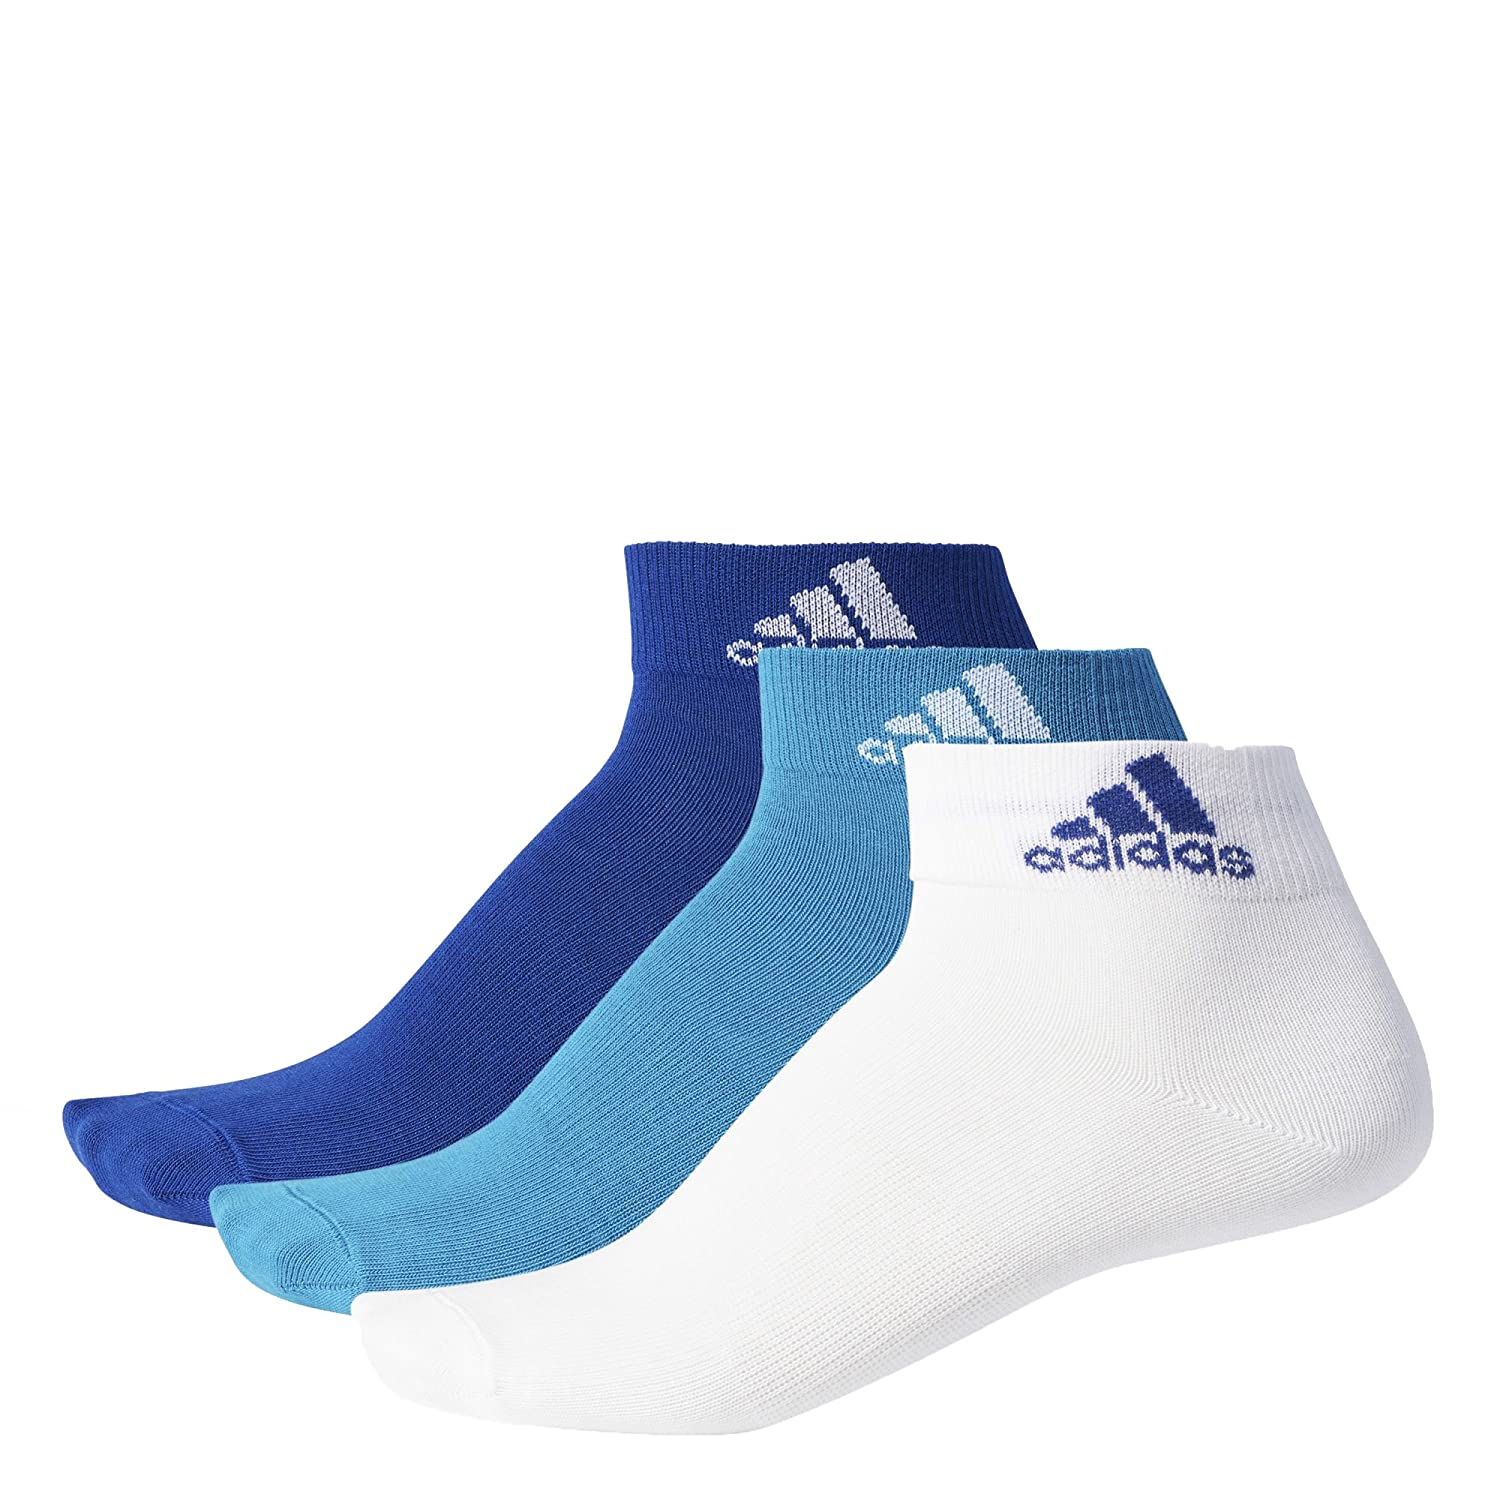 Adidas per Ankle T 3Pp, Calze Unisex Bambini, (Petmis/Bianco/Tinmis), 4346 BS1709